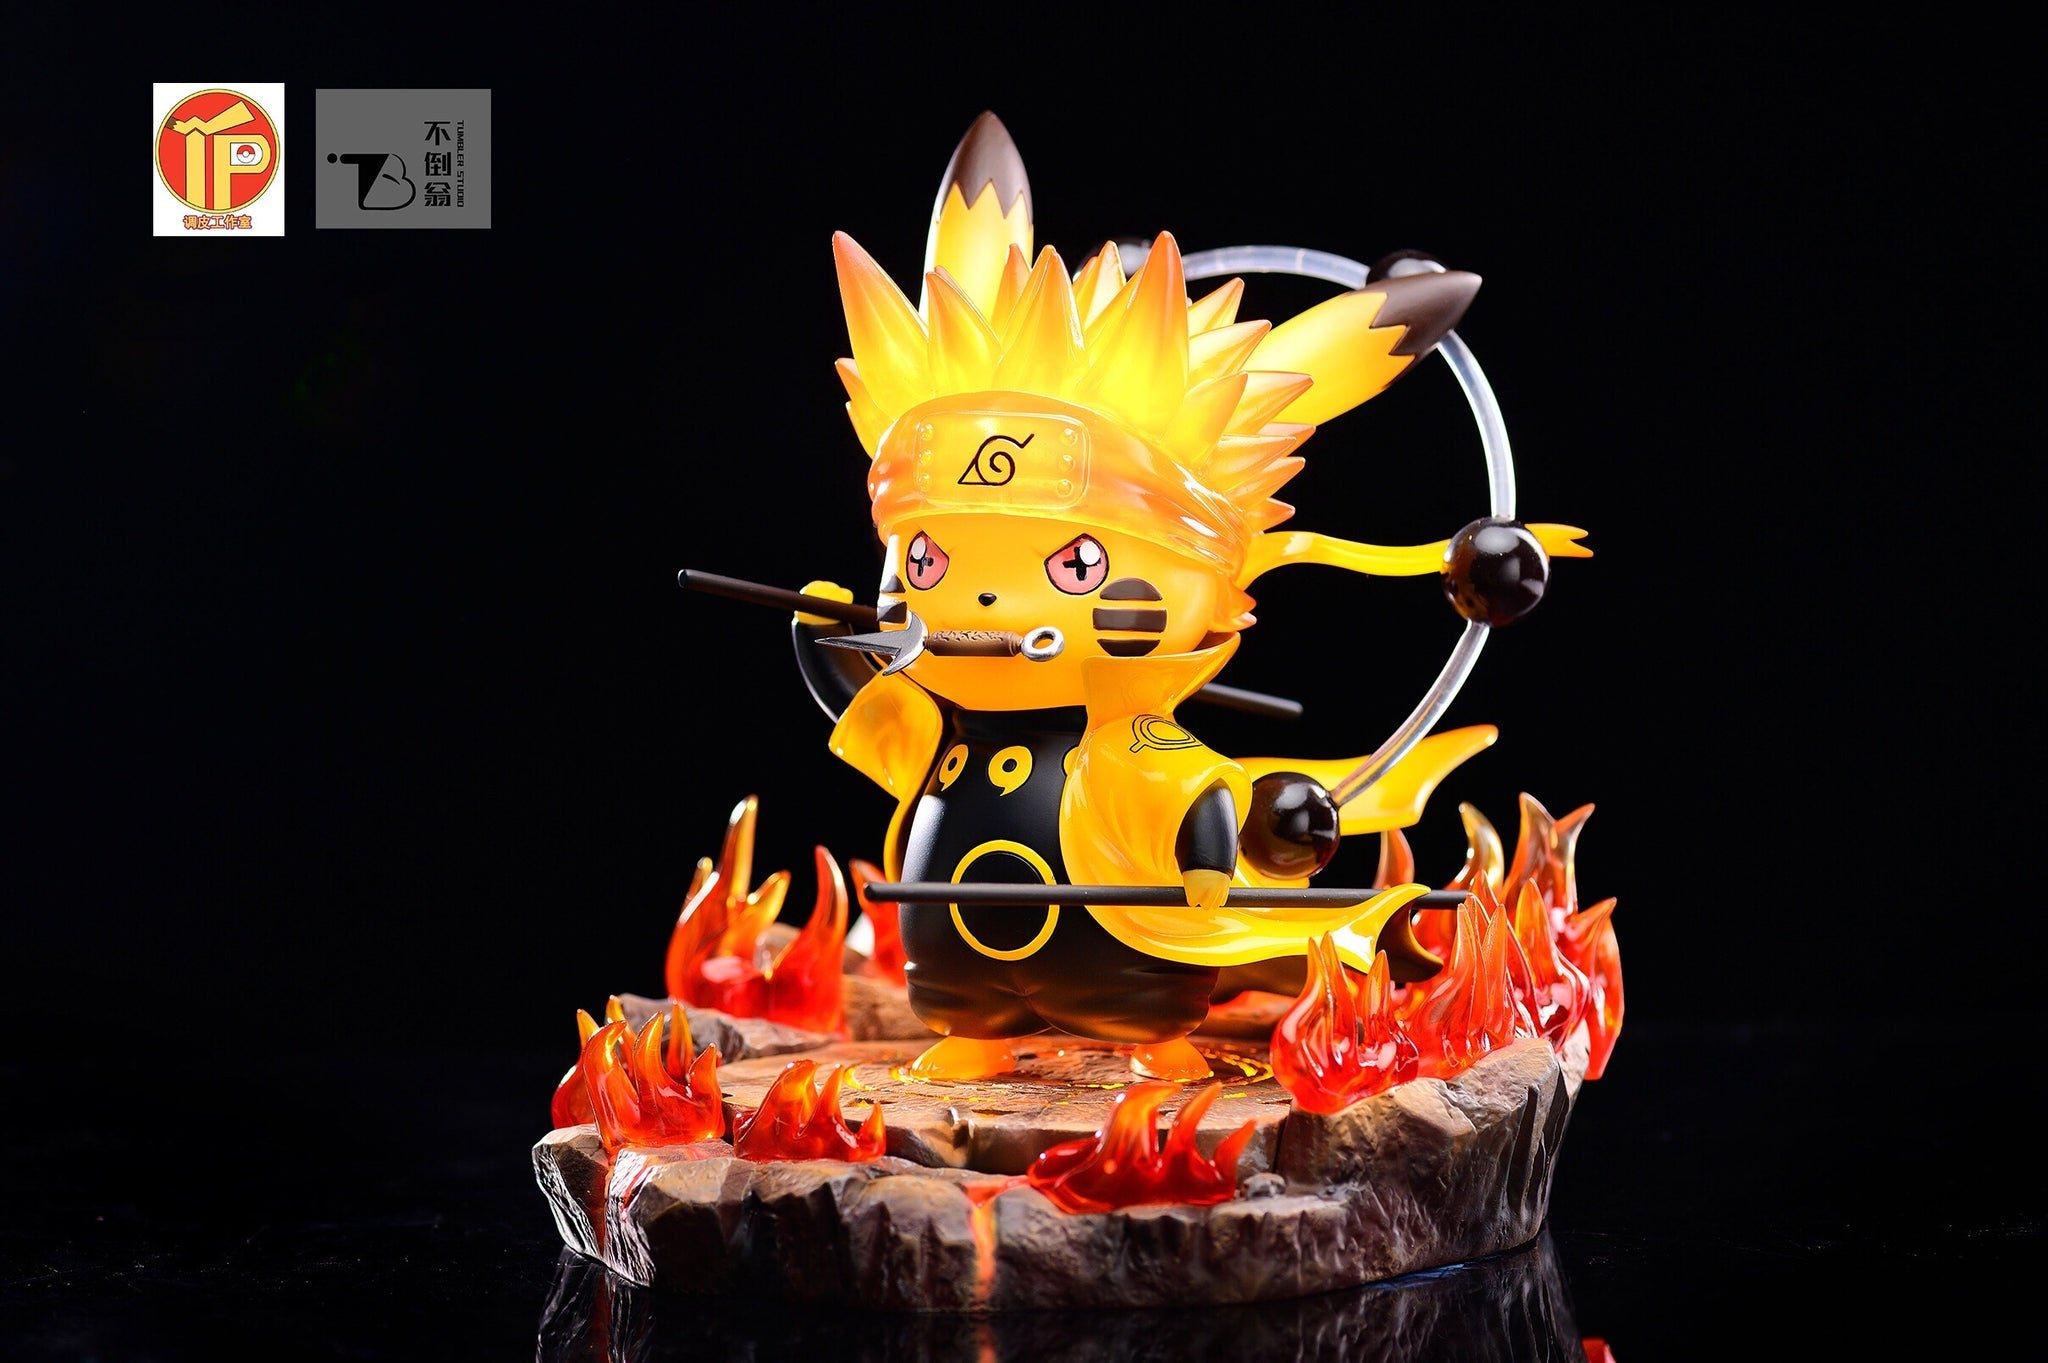 [PREORDER]Pikachu x Six Path Naruto Exclusive Ver.